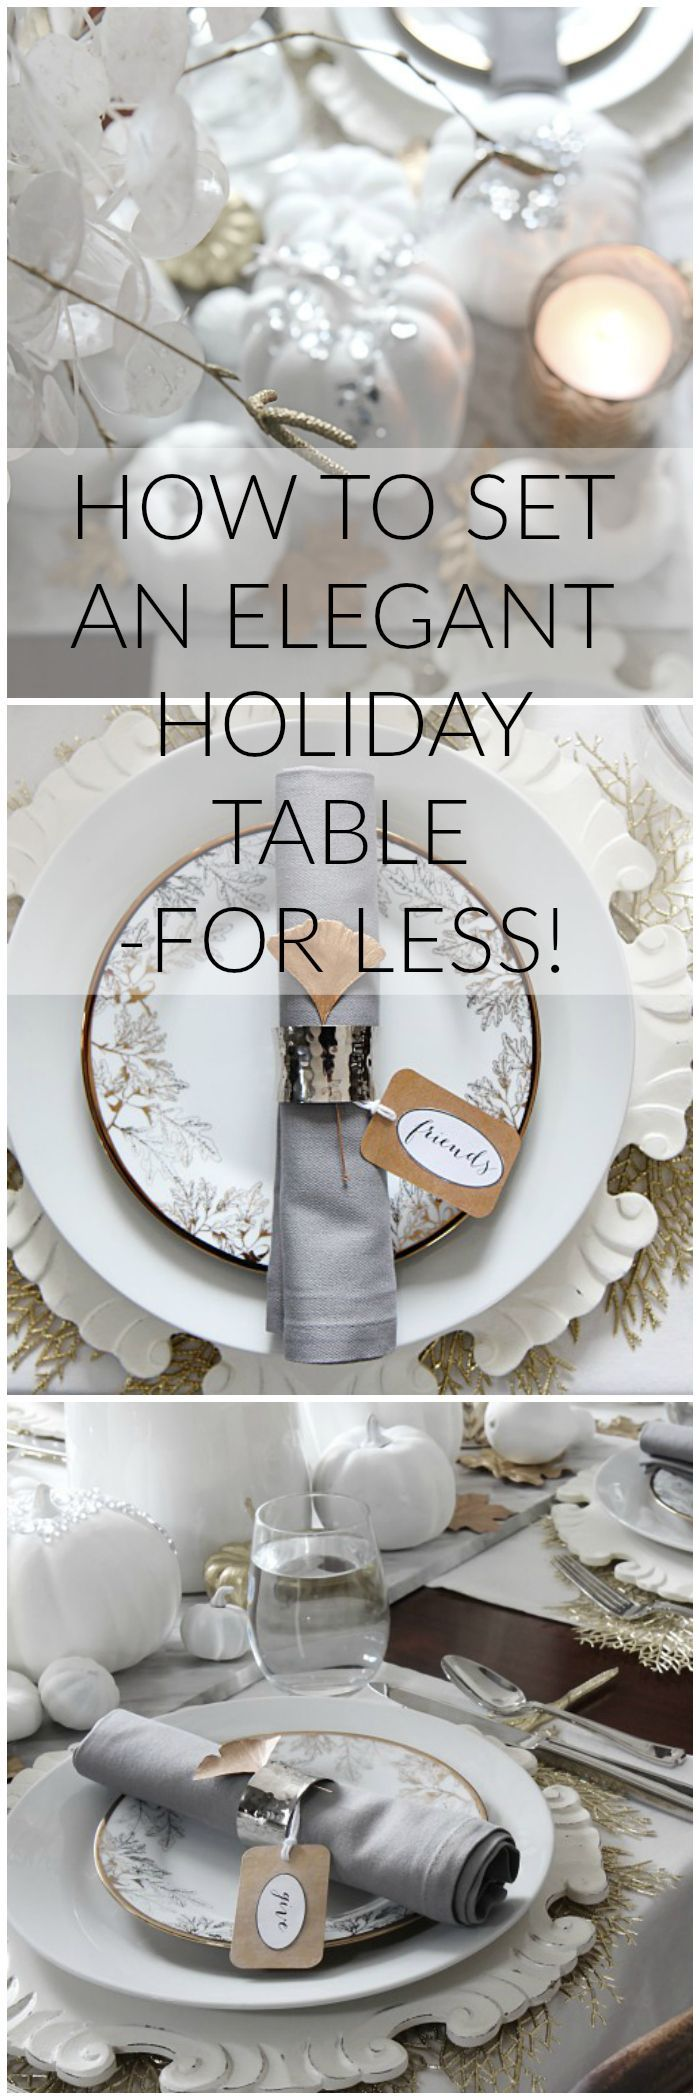 How to set an elegant holiday table